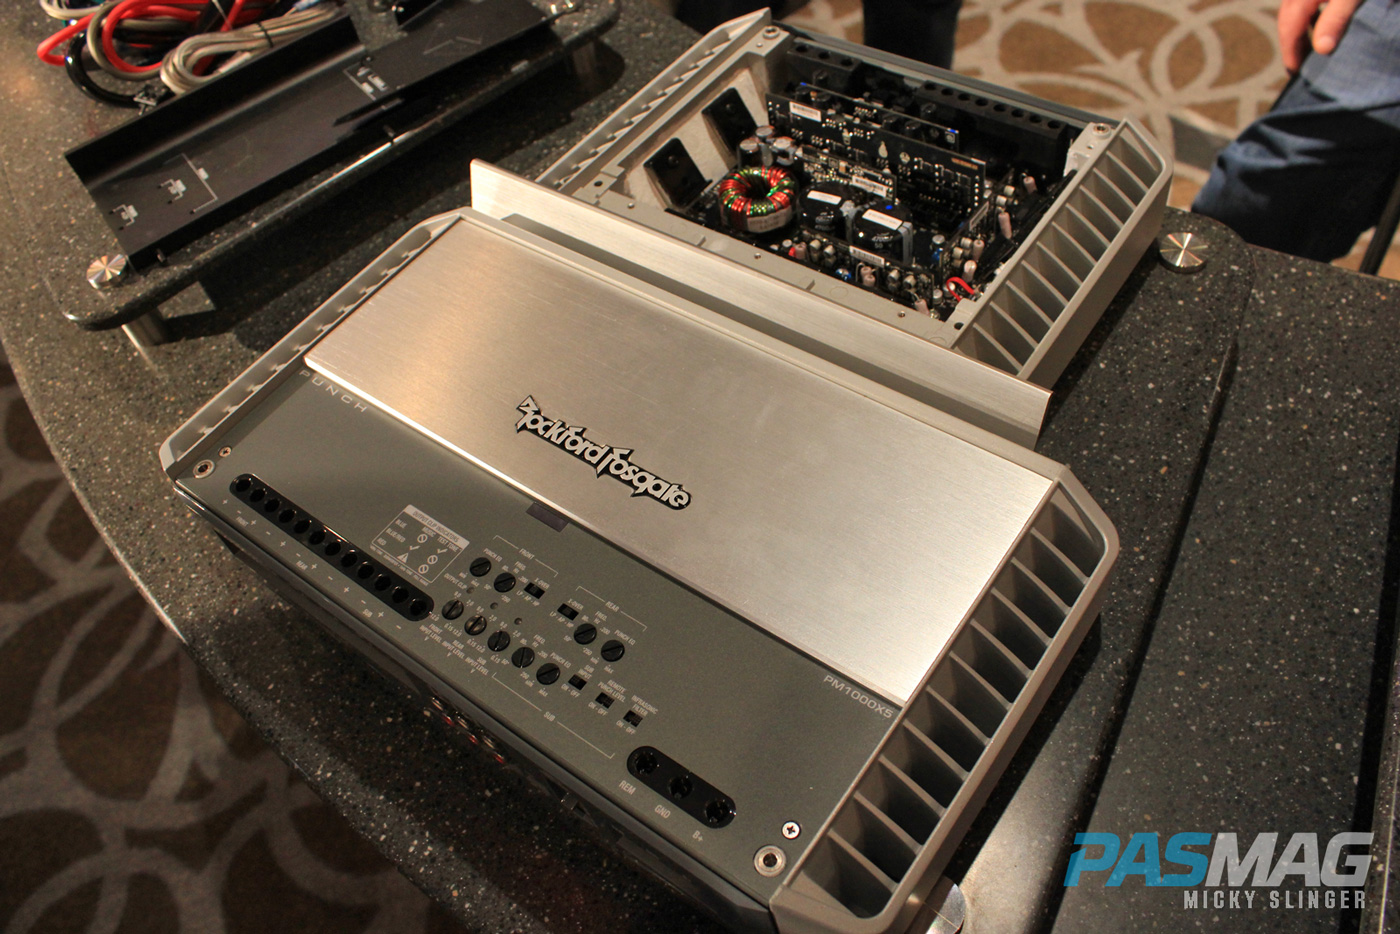 PASMAG CES 2015 Las Vegas NV Rockford Fosgate Punch Amplifier